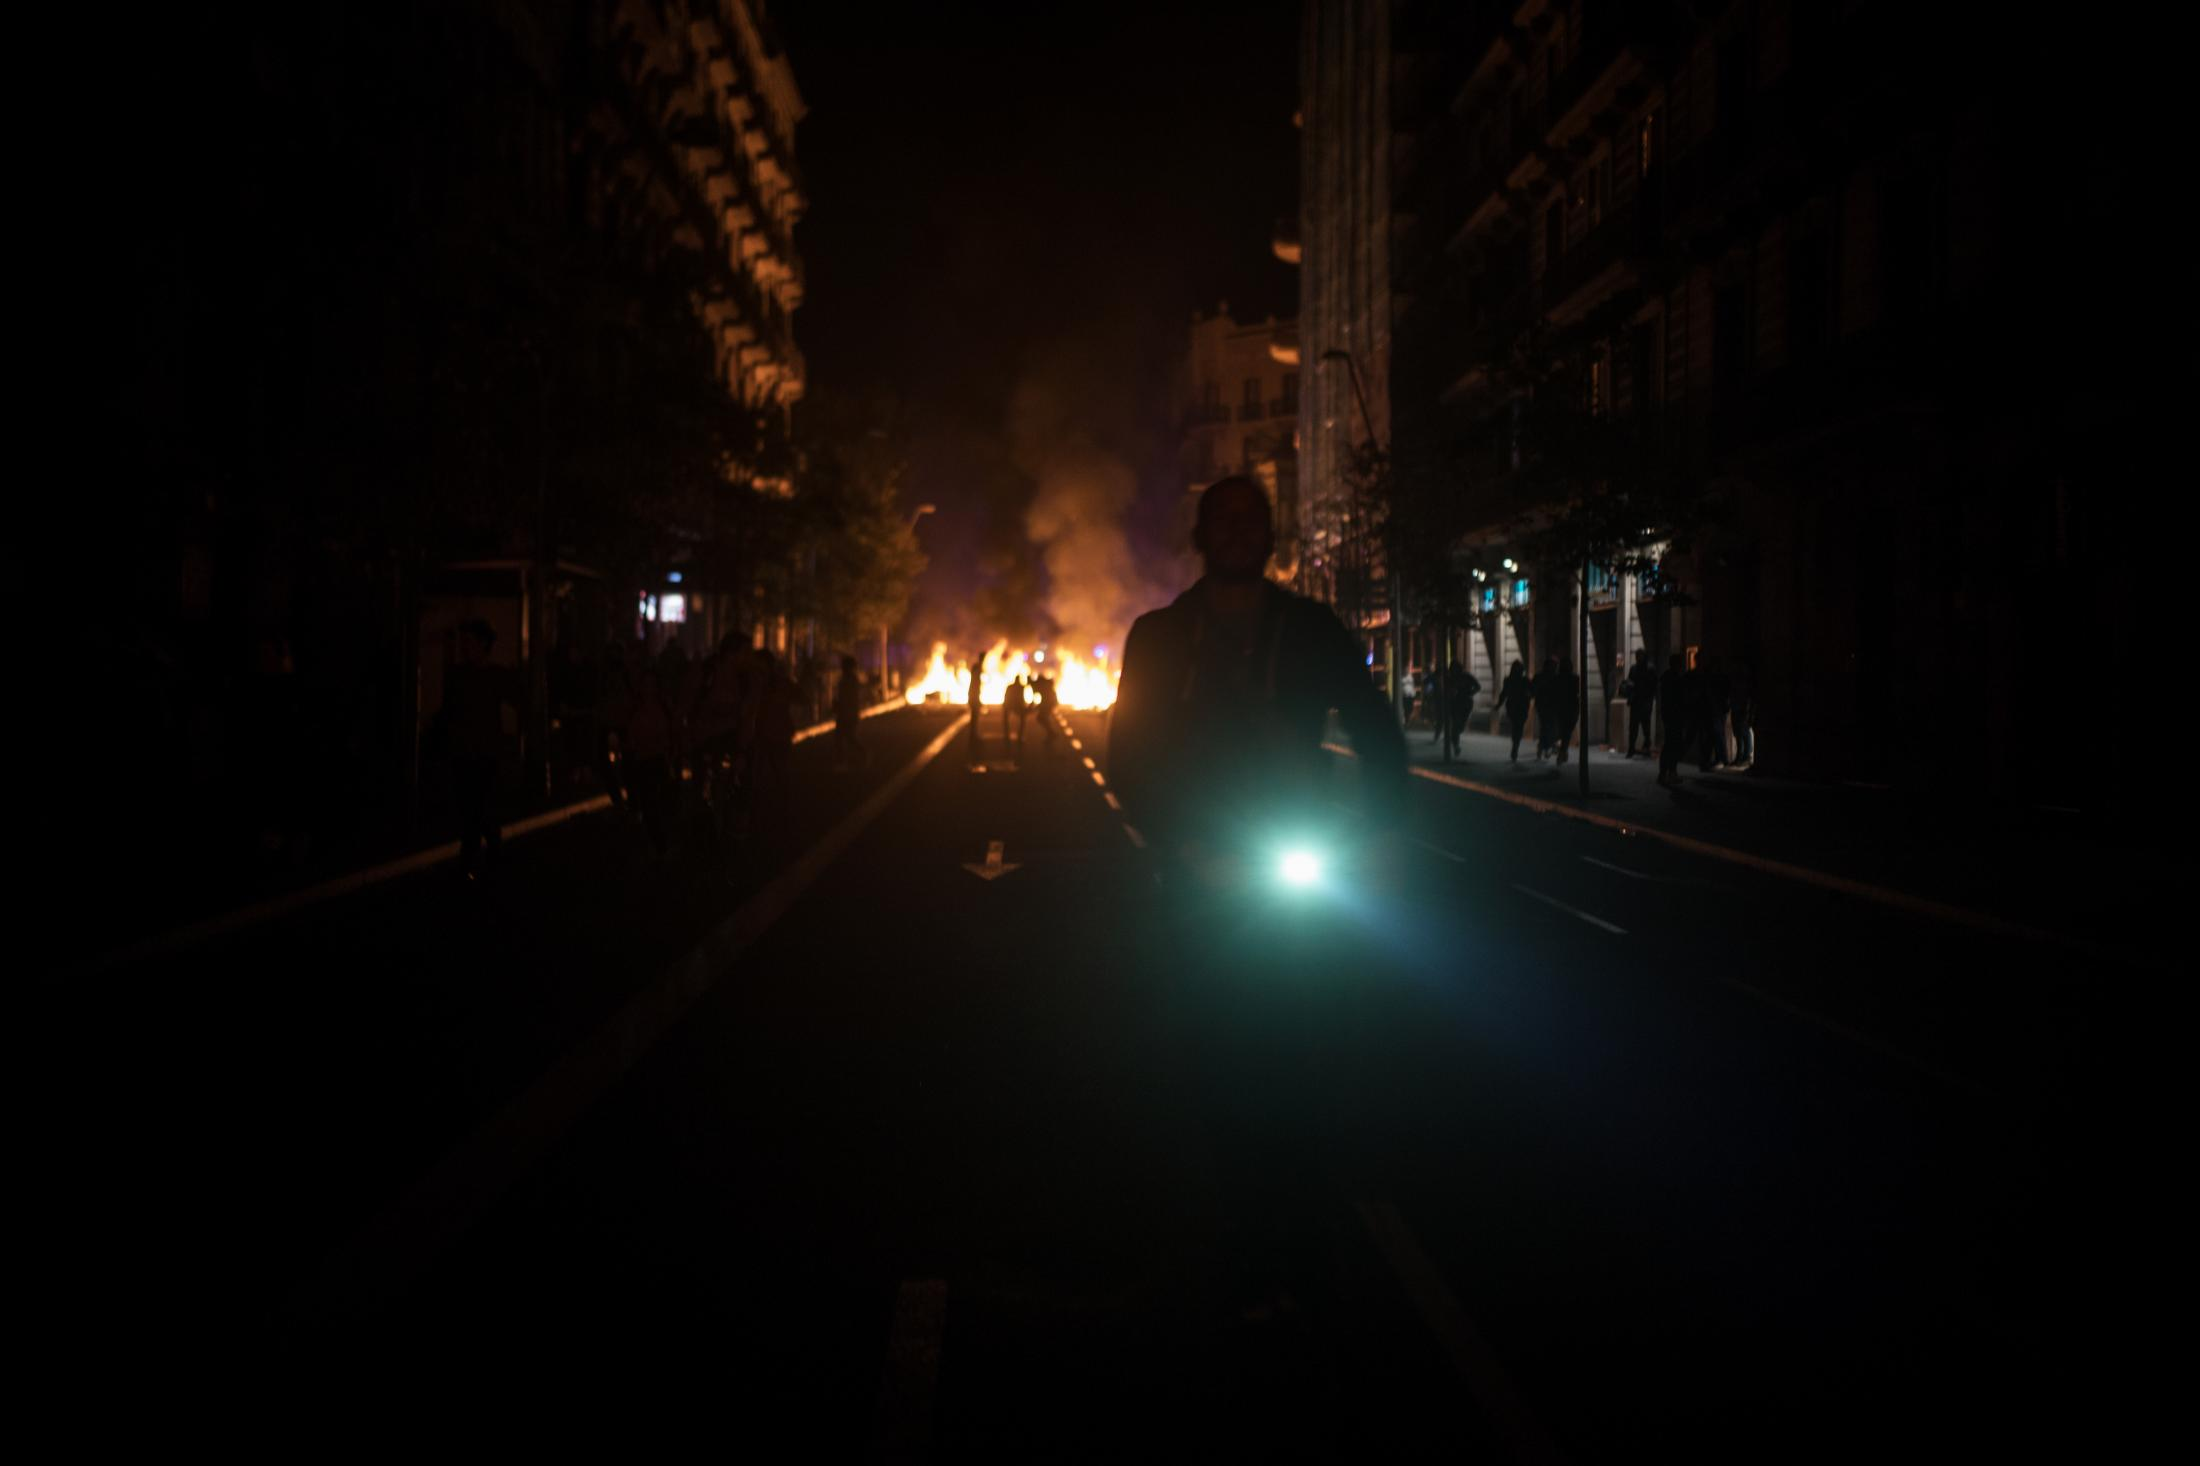 """October 18, 2019. Barcelona, Spain. A man rides his bicycle towards roads with fire barriers. The movement driven by """"frustration"""" as a result of the """"repression"""" experienced asks Spain to sit and talk to solve the problem and claims the value of the words """"resistance"""", """"unity"""", """"referendum"""", """"democracy"""", """"rights"""" and """"justice"""" while reborn with the will to generate hope and fighting fear. Many Catalans believe in a new generation of activists who feel gagged and takes the street while the protests and the political paralysis of Spain leave the sensation of a dead-end. Catalonia has been counting the political cost after protests swept across the region. Hoteliers, restaurants, and shops say takings fell up to 50% after the violence, and future bookings may be hit. The tourism association, Barcelona Oberta, estimates that economic activity in the city center – from shops, hotels, and restaurants – fell by between 30% and 50% in the week after the leaders were sentenced, either because fearful customers stayed away or businesses closed to avoid being looted."""